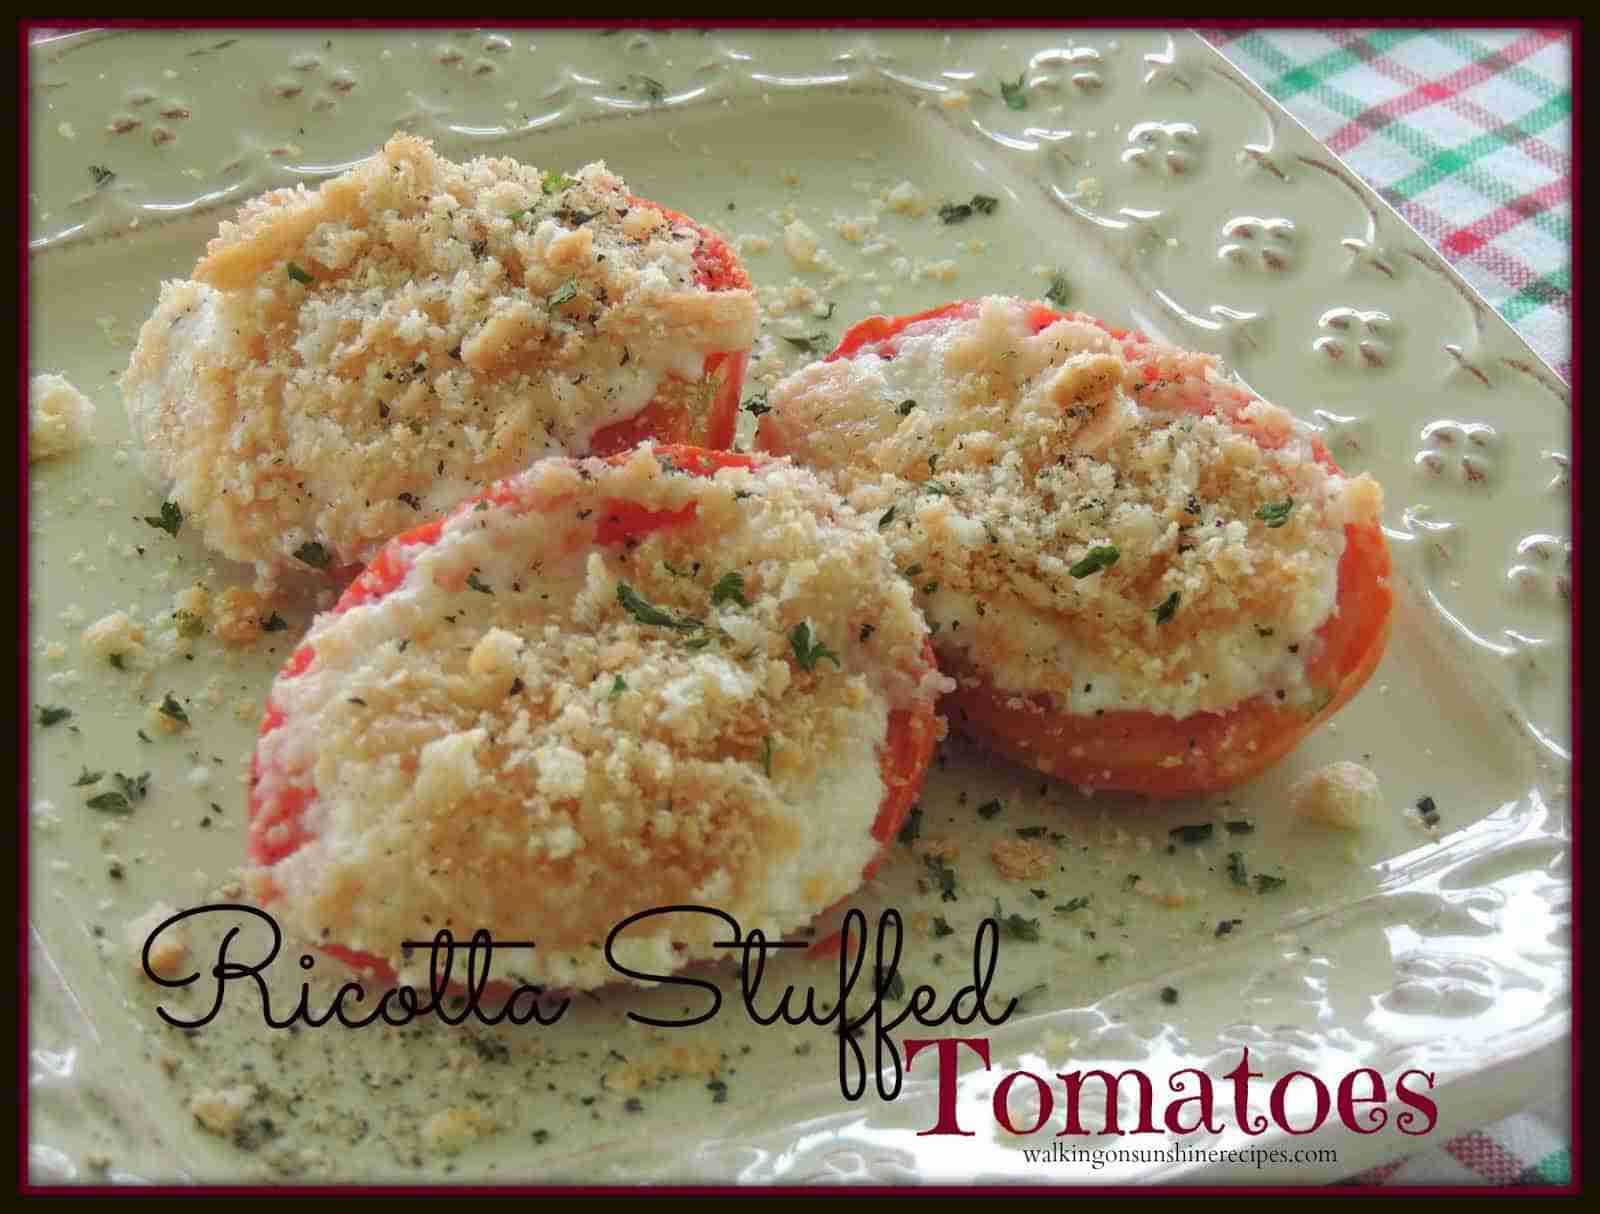 Stuffed tomatoes promo